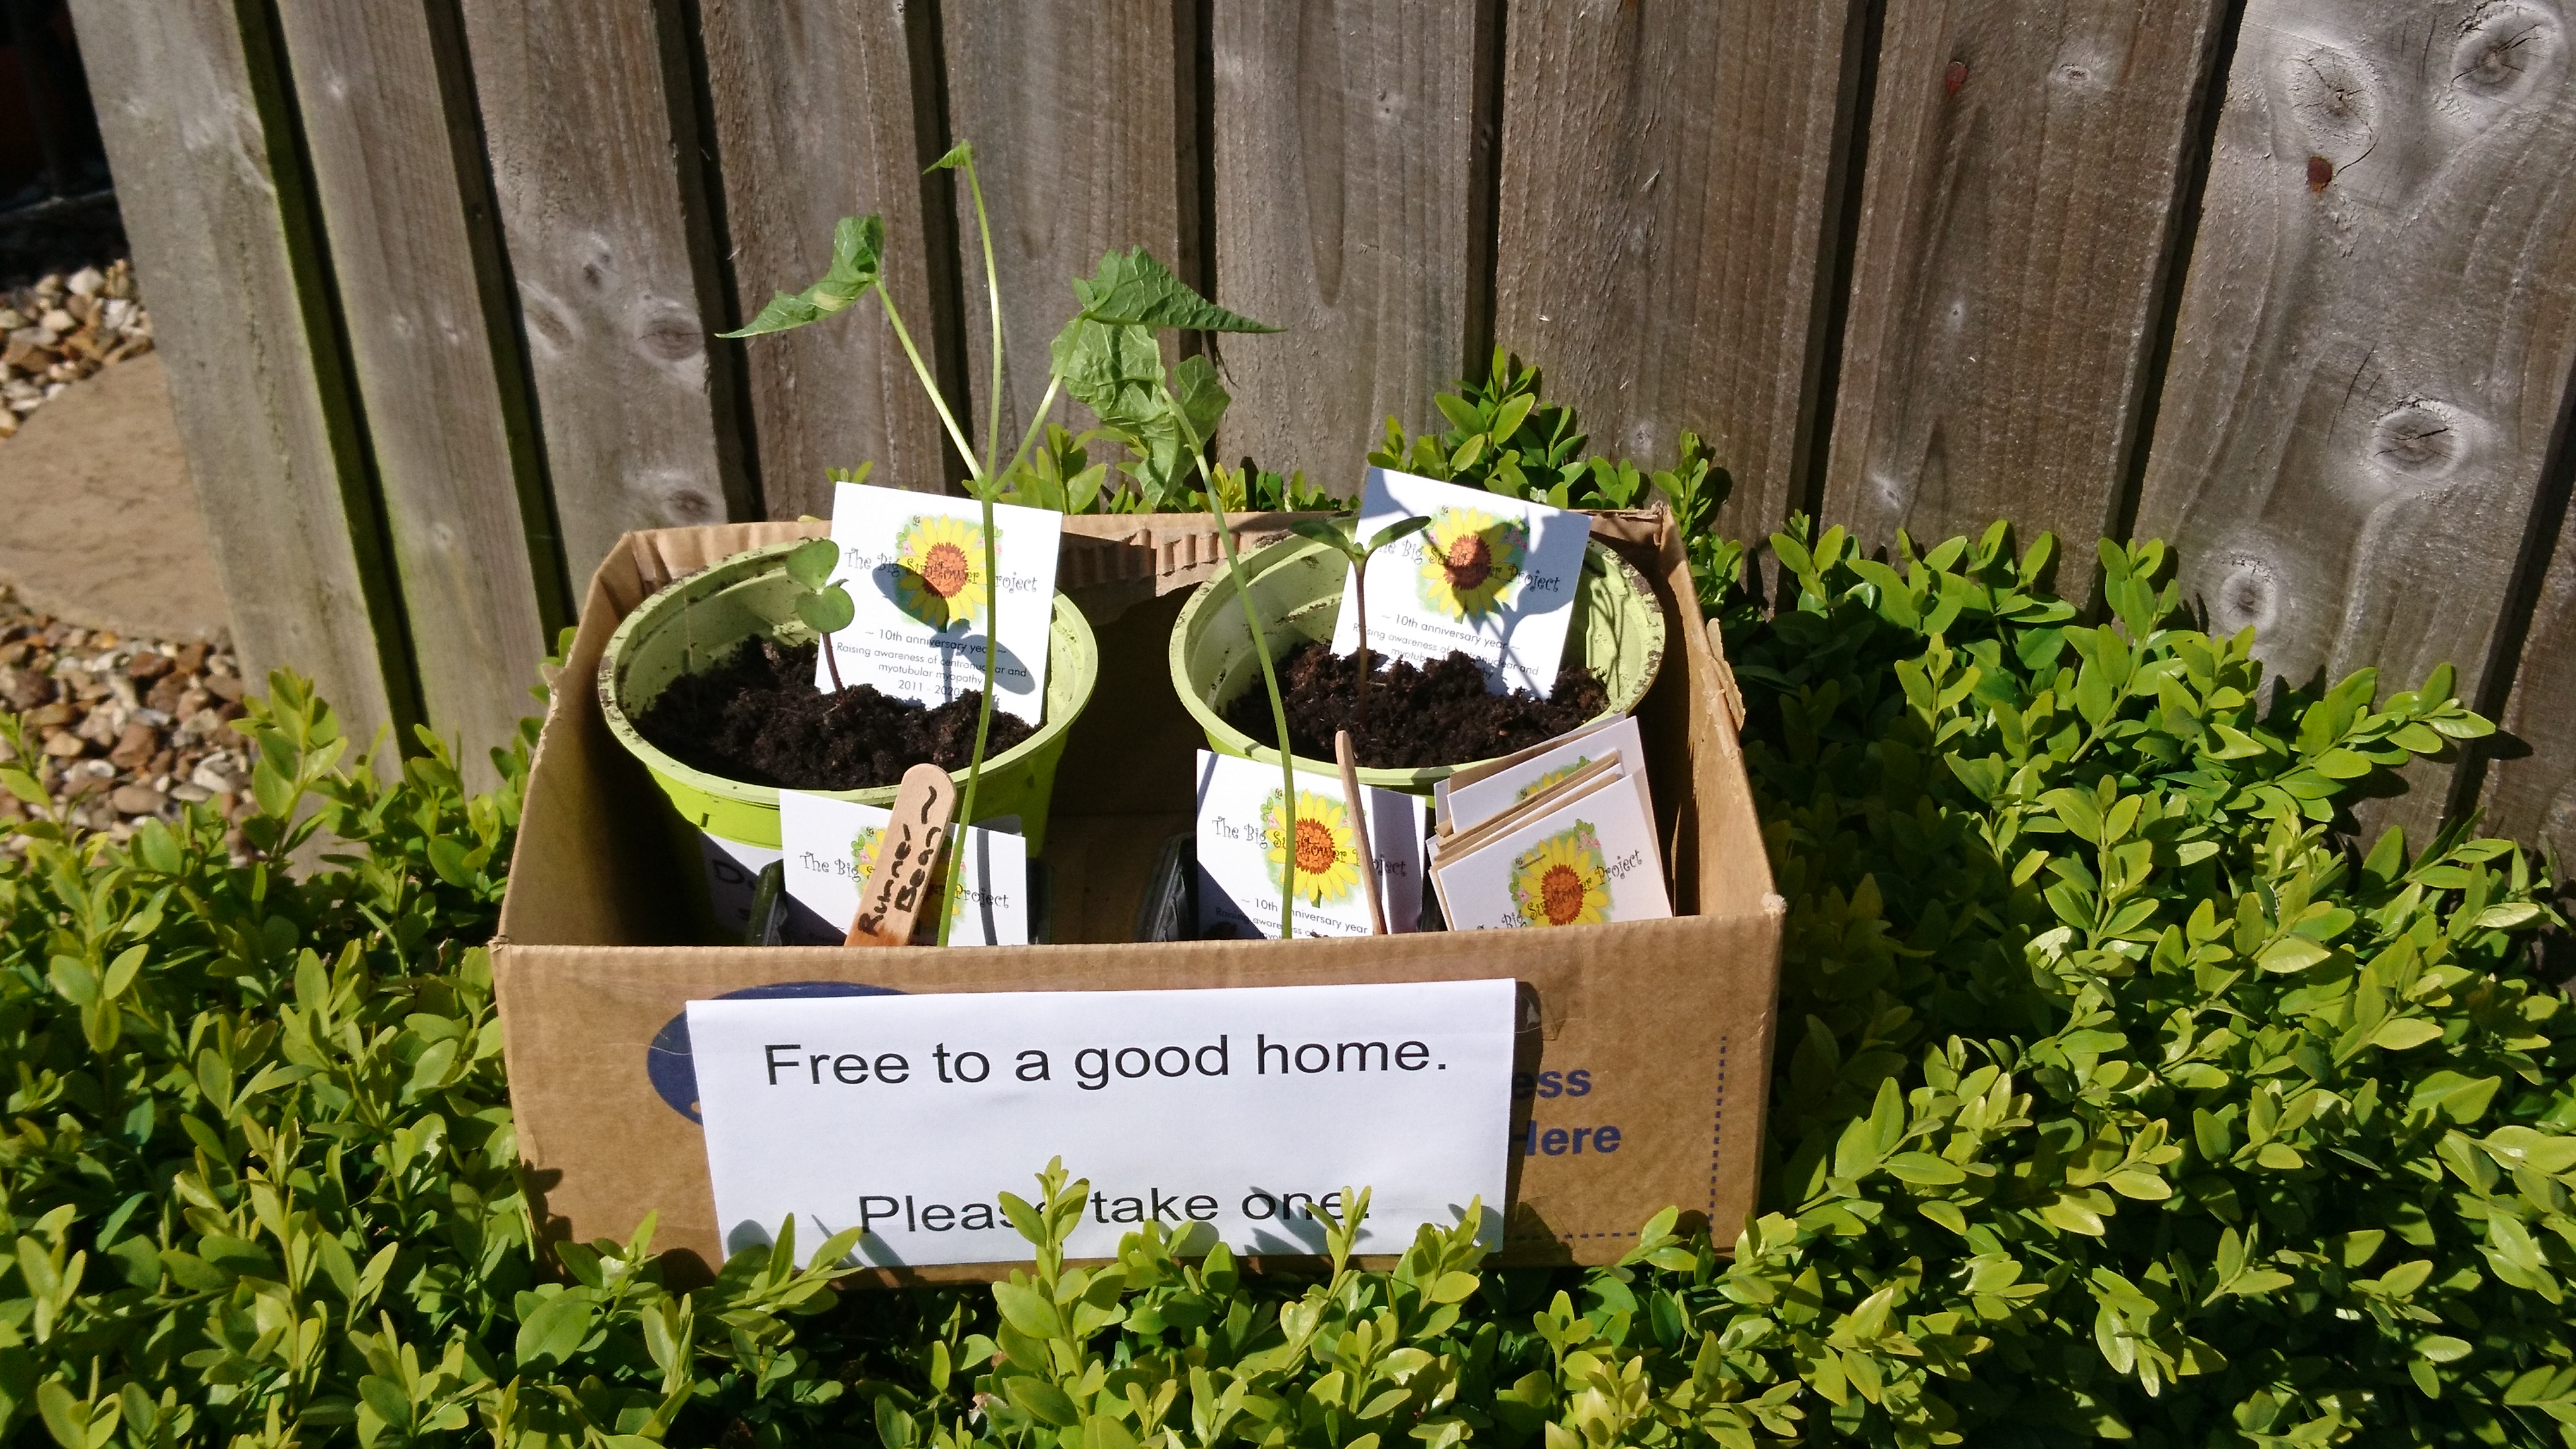 Free seeds and plants.